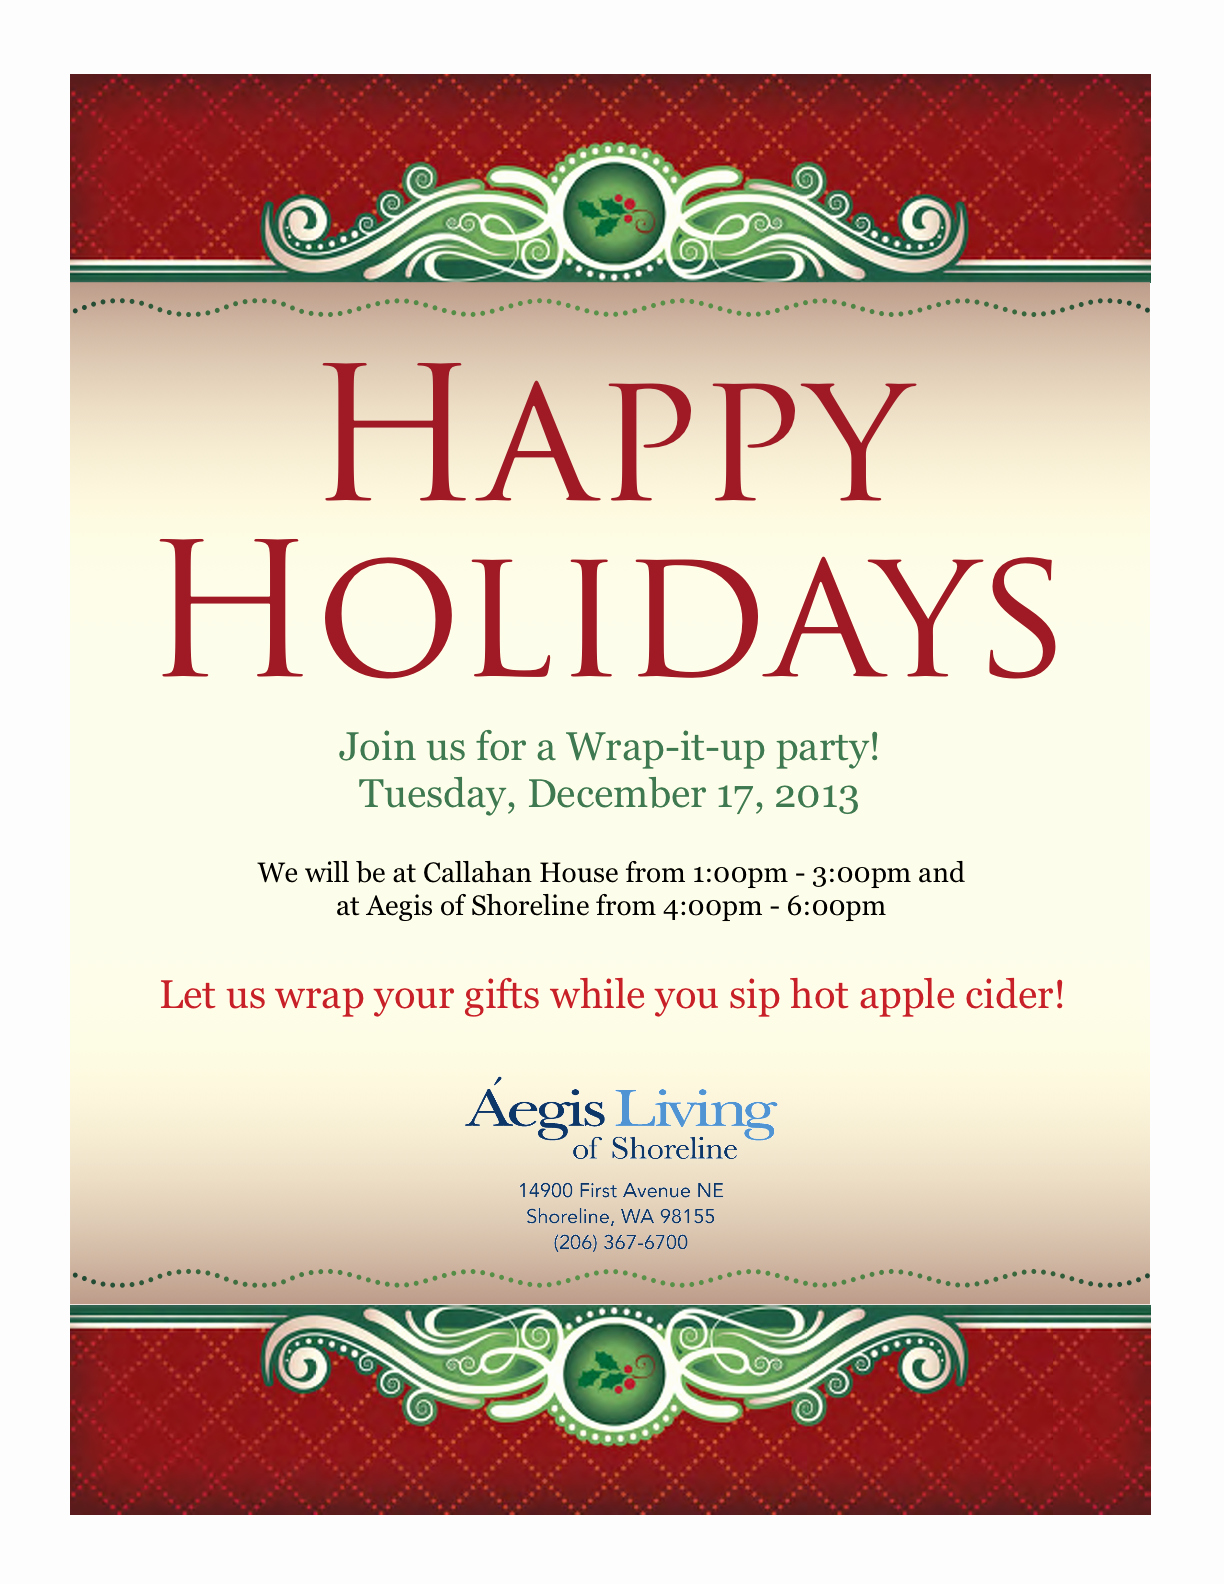 Office Closed for Holiday Sign Inspirational Shoreline area News Wrapping Party at Aegis Of Shoreline